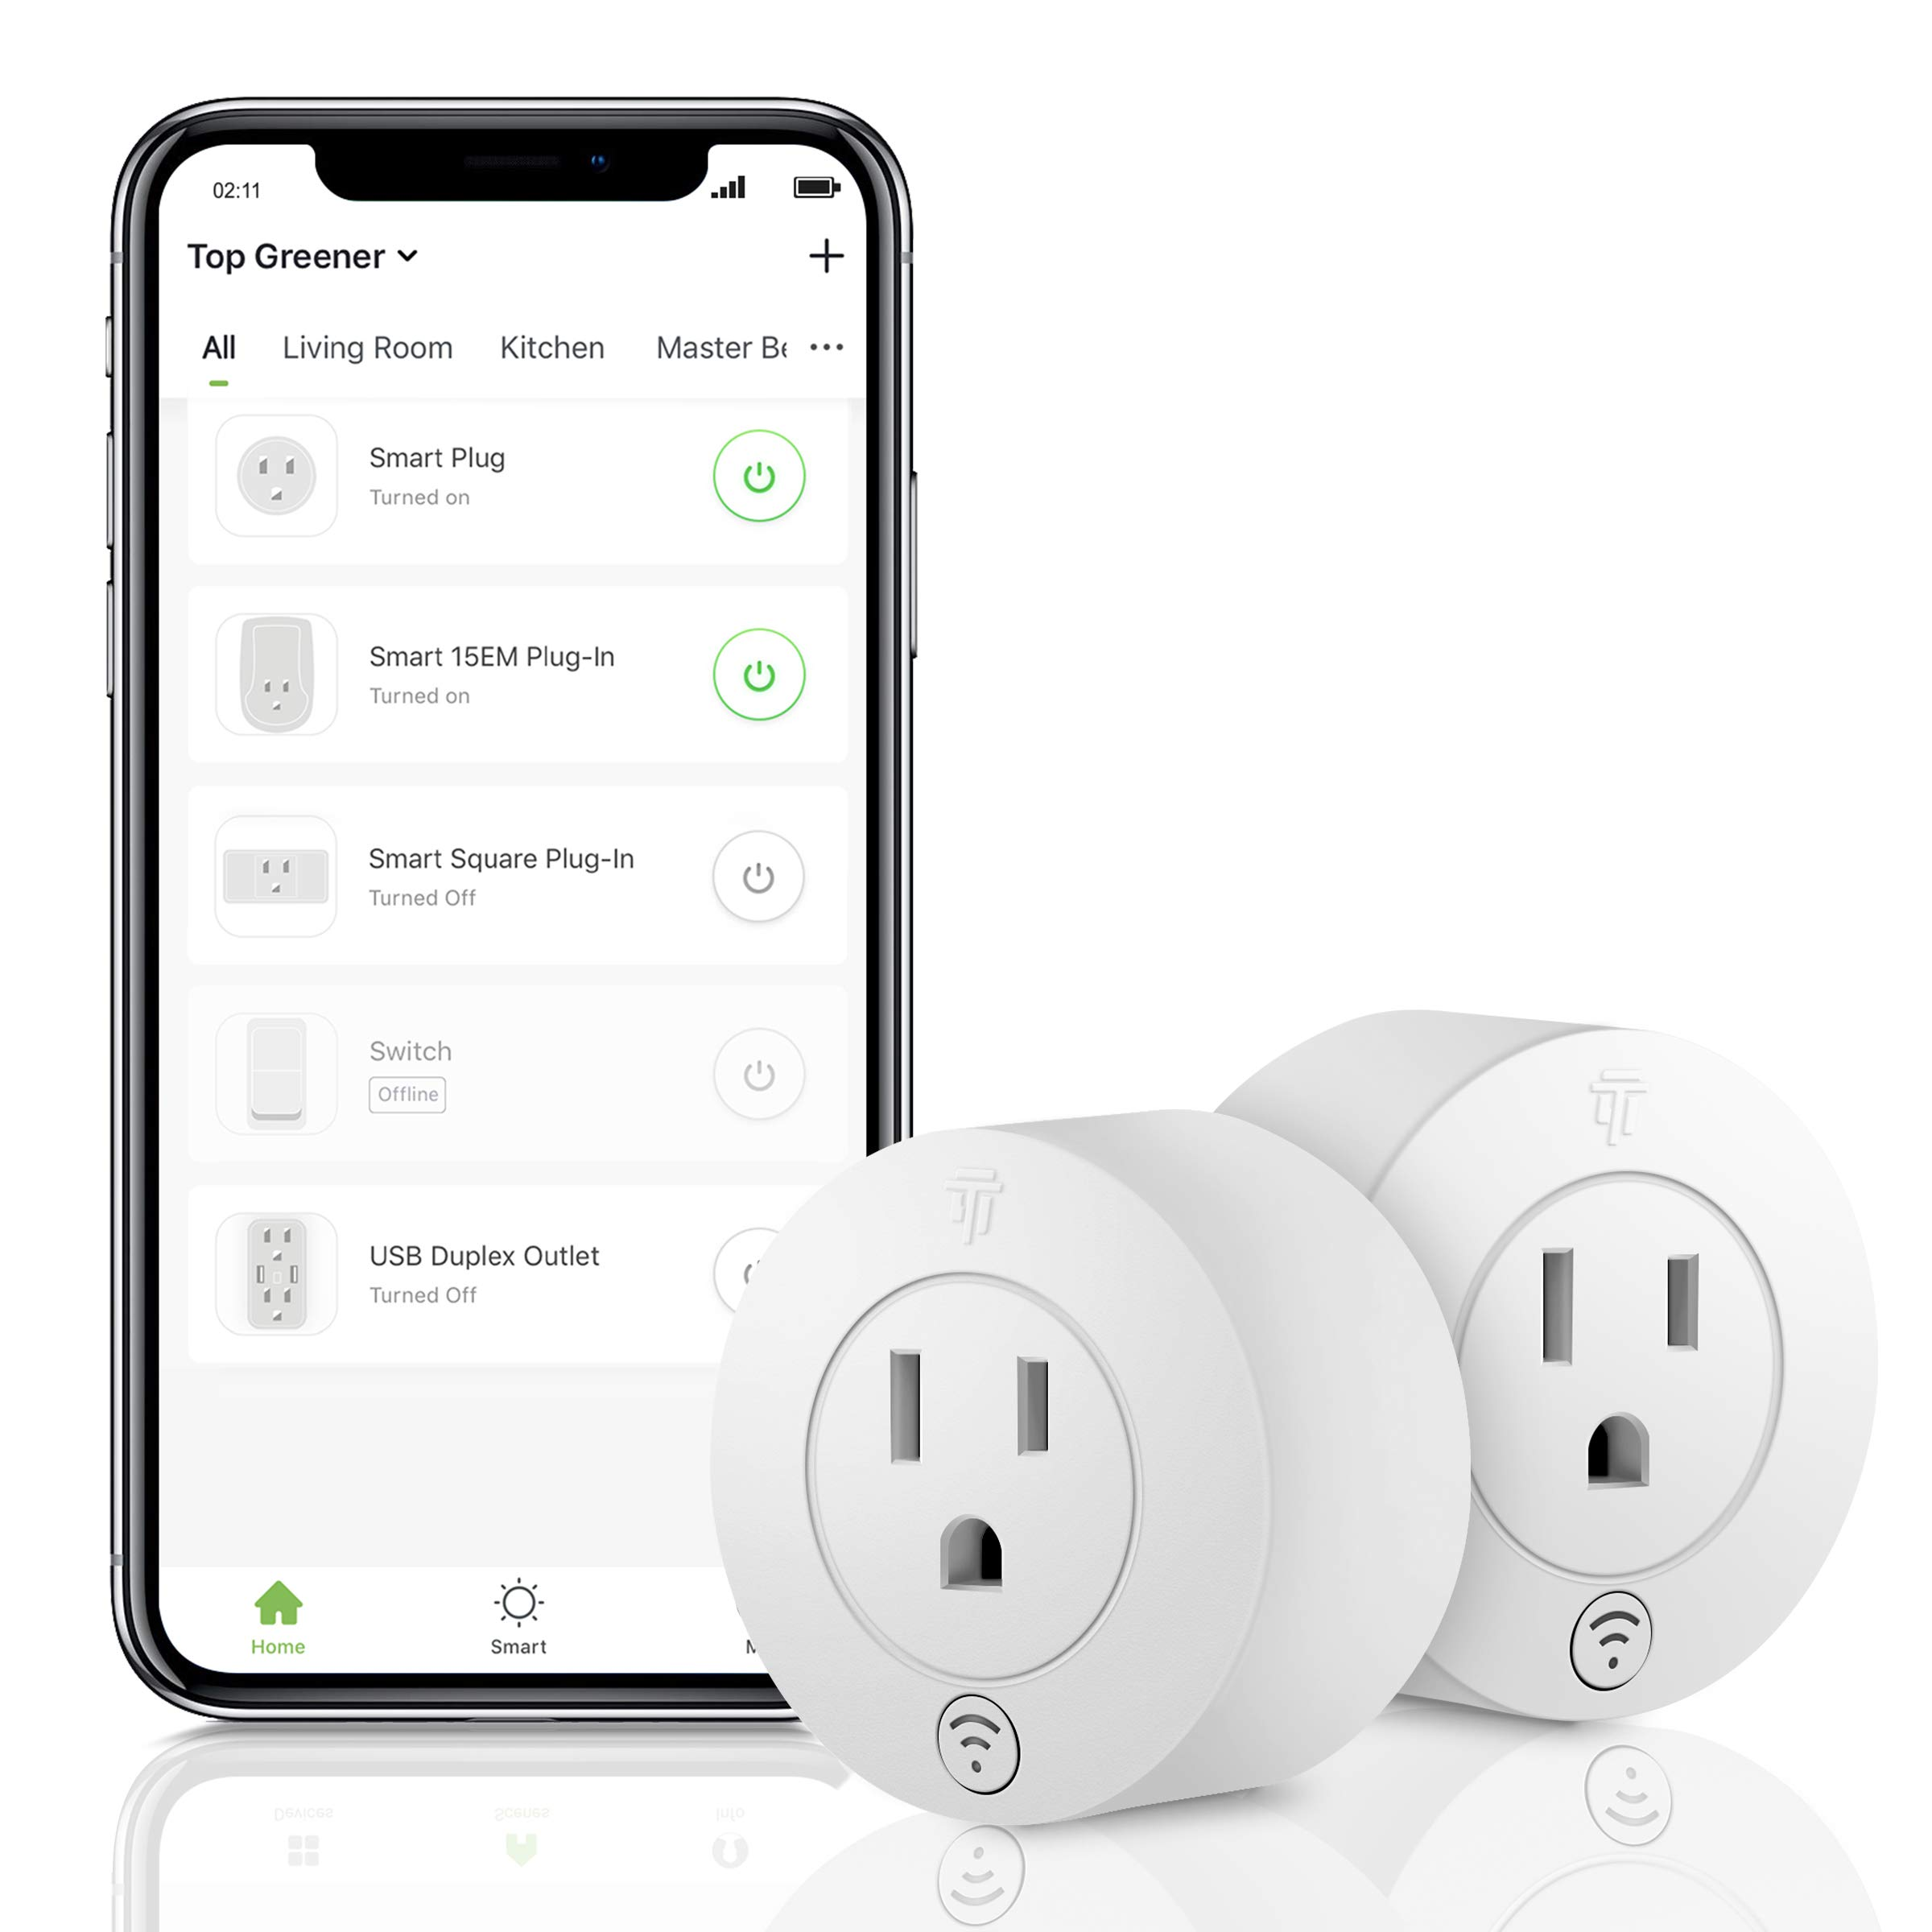 TOPGREENER Smart Mini Wi-Fi Plug with Energy Monitoring, Smart Outlet, Control Lights and Appliances from Anywhere, No Hub Required, Works with Alexa and Google Assistant, TGWF115PRM, 2-Pack